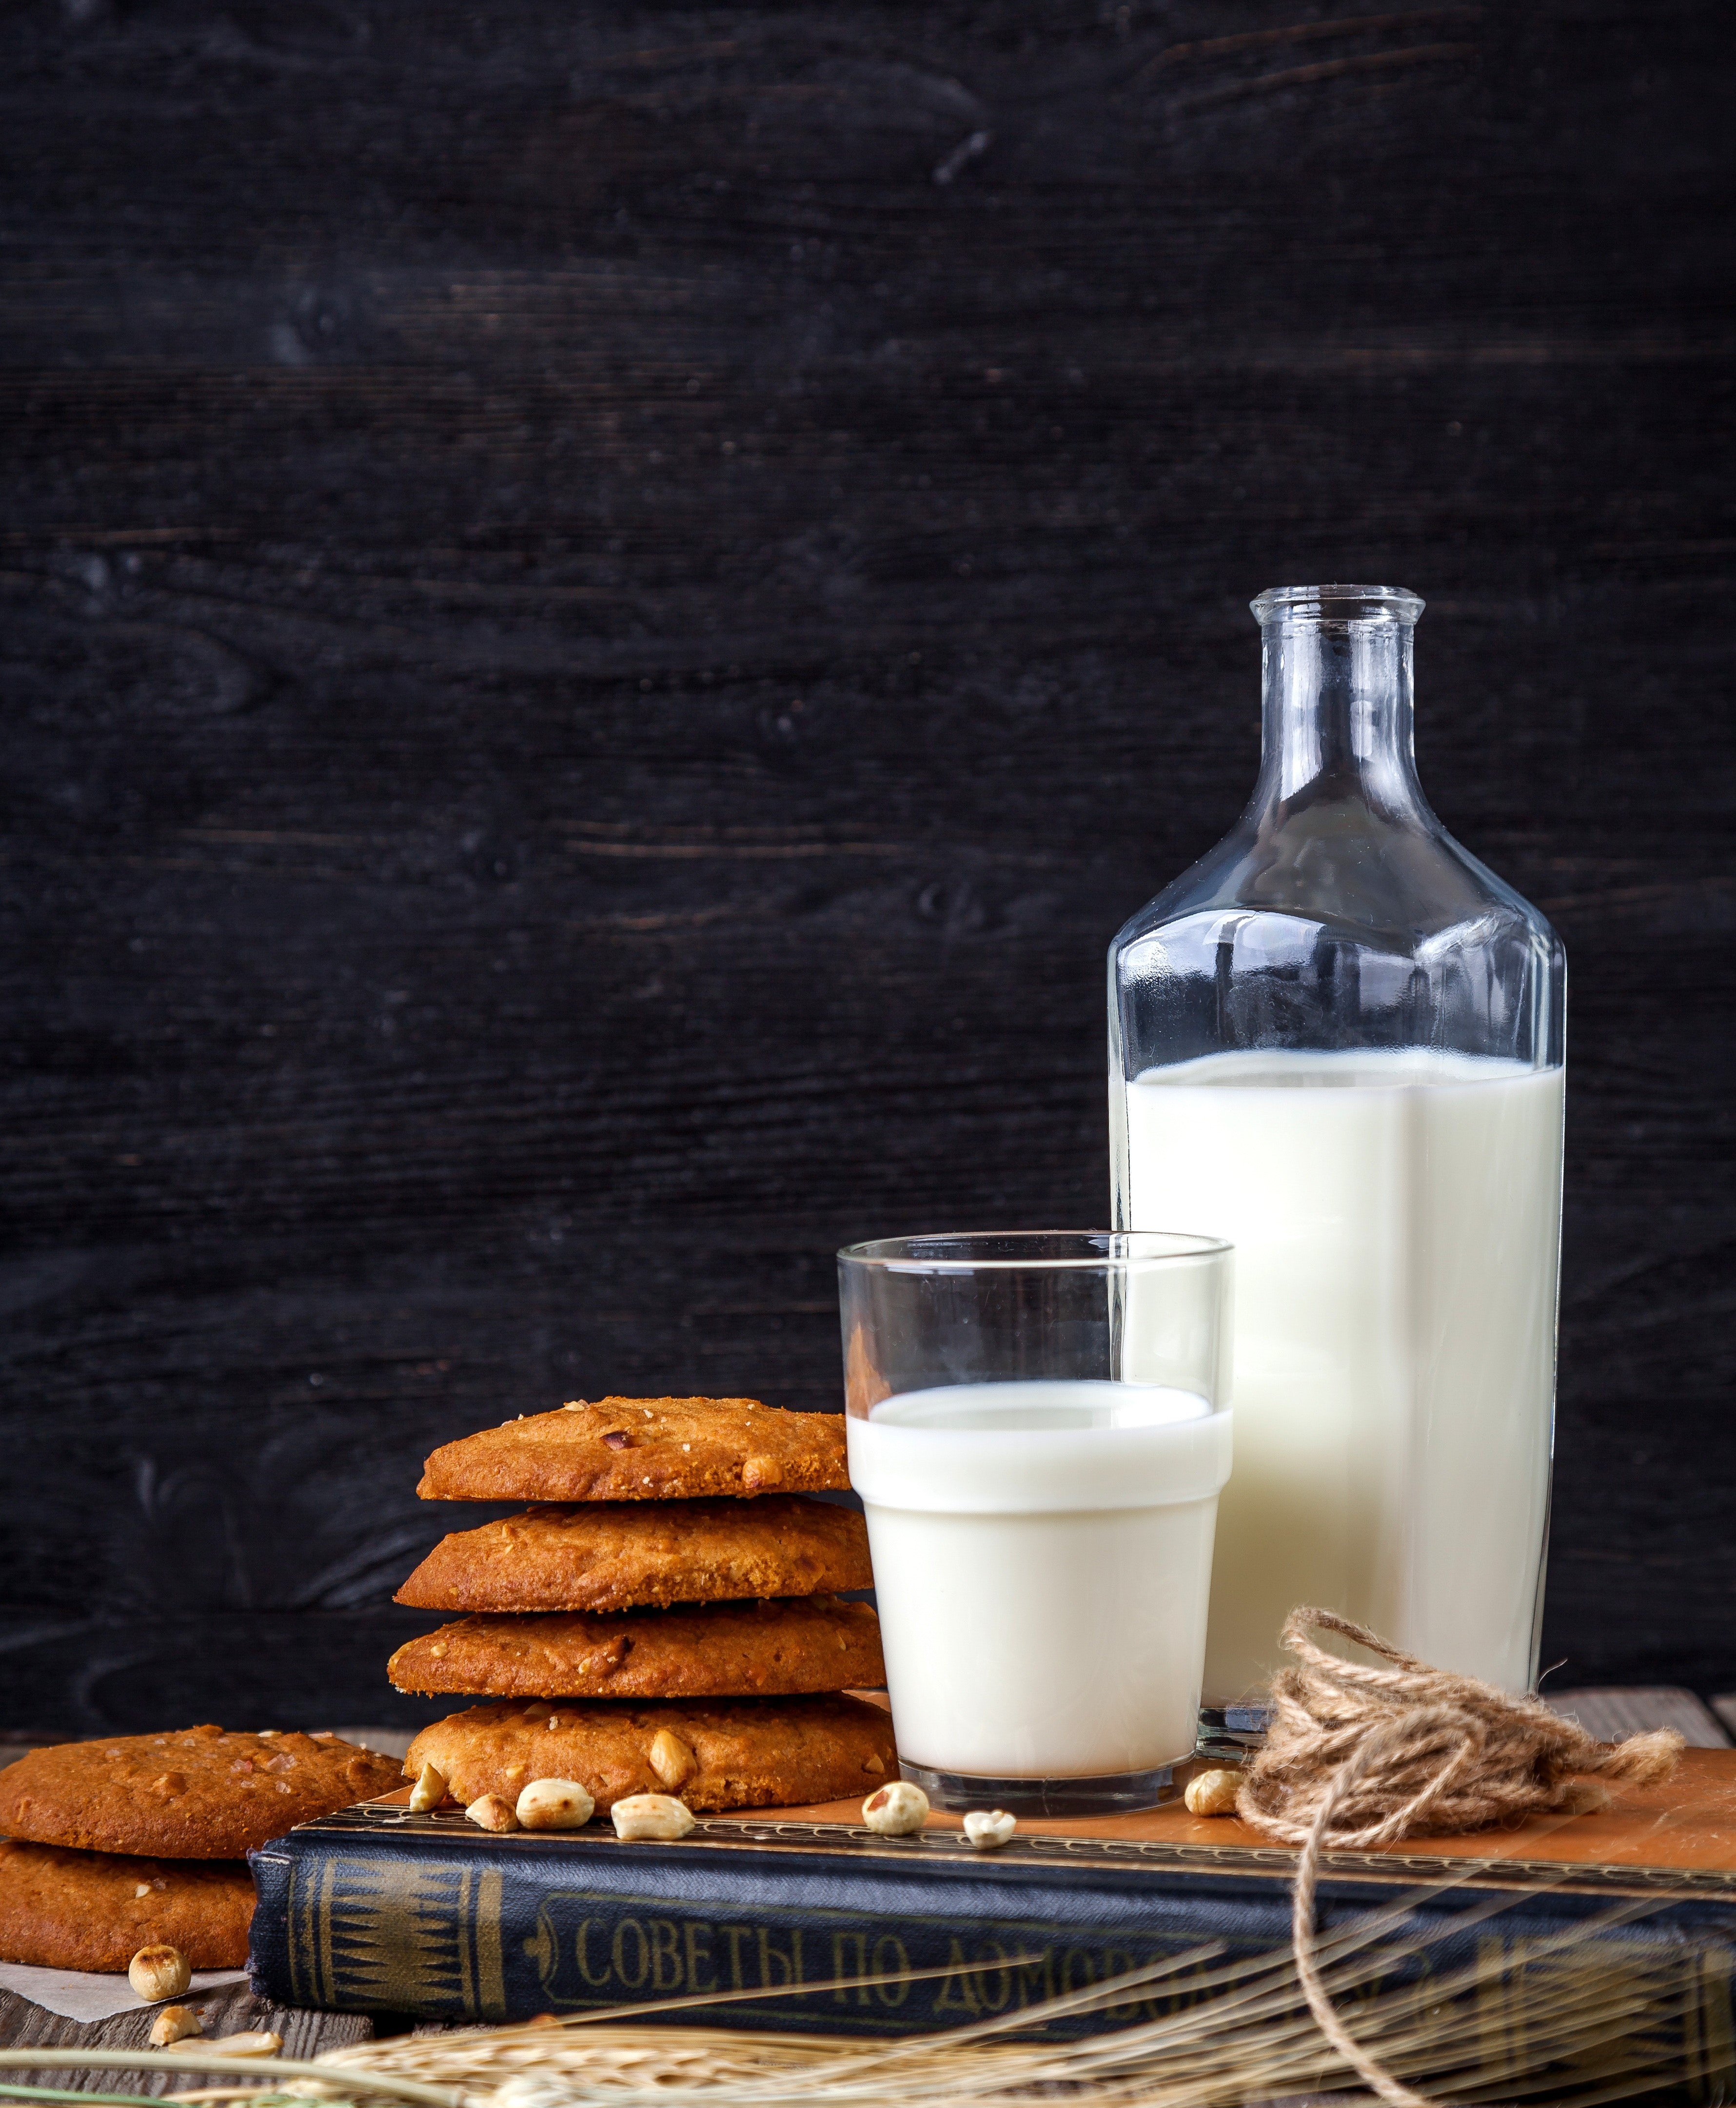 NMR-based MetabolomIcs foR orgAniC miLk authEntication (NMR-MIRACLE)